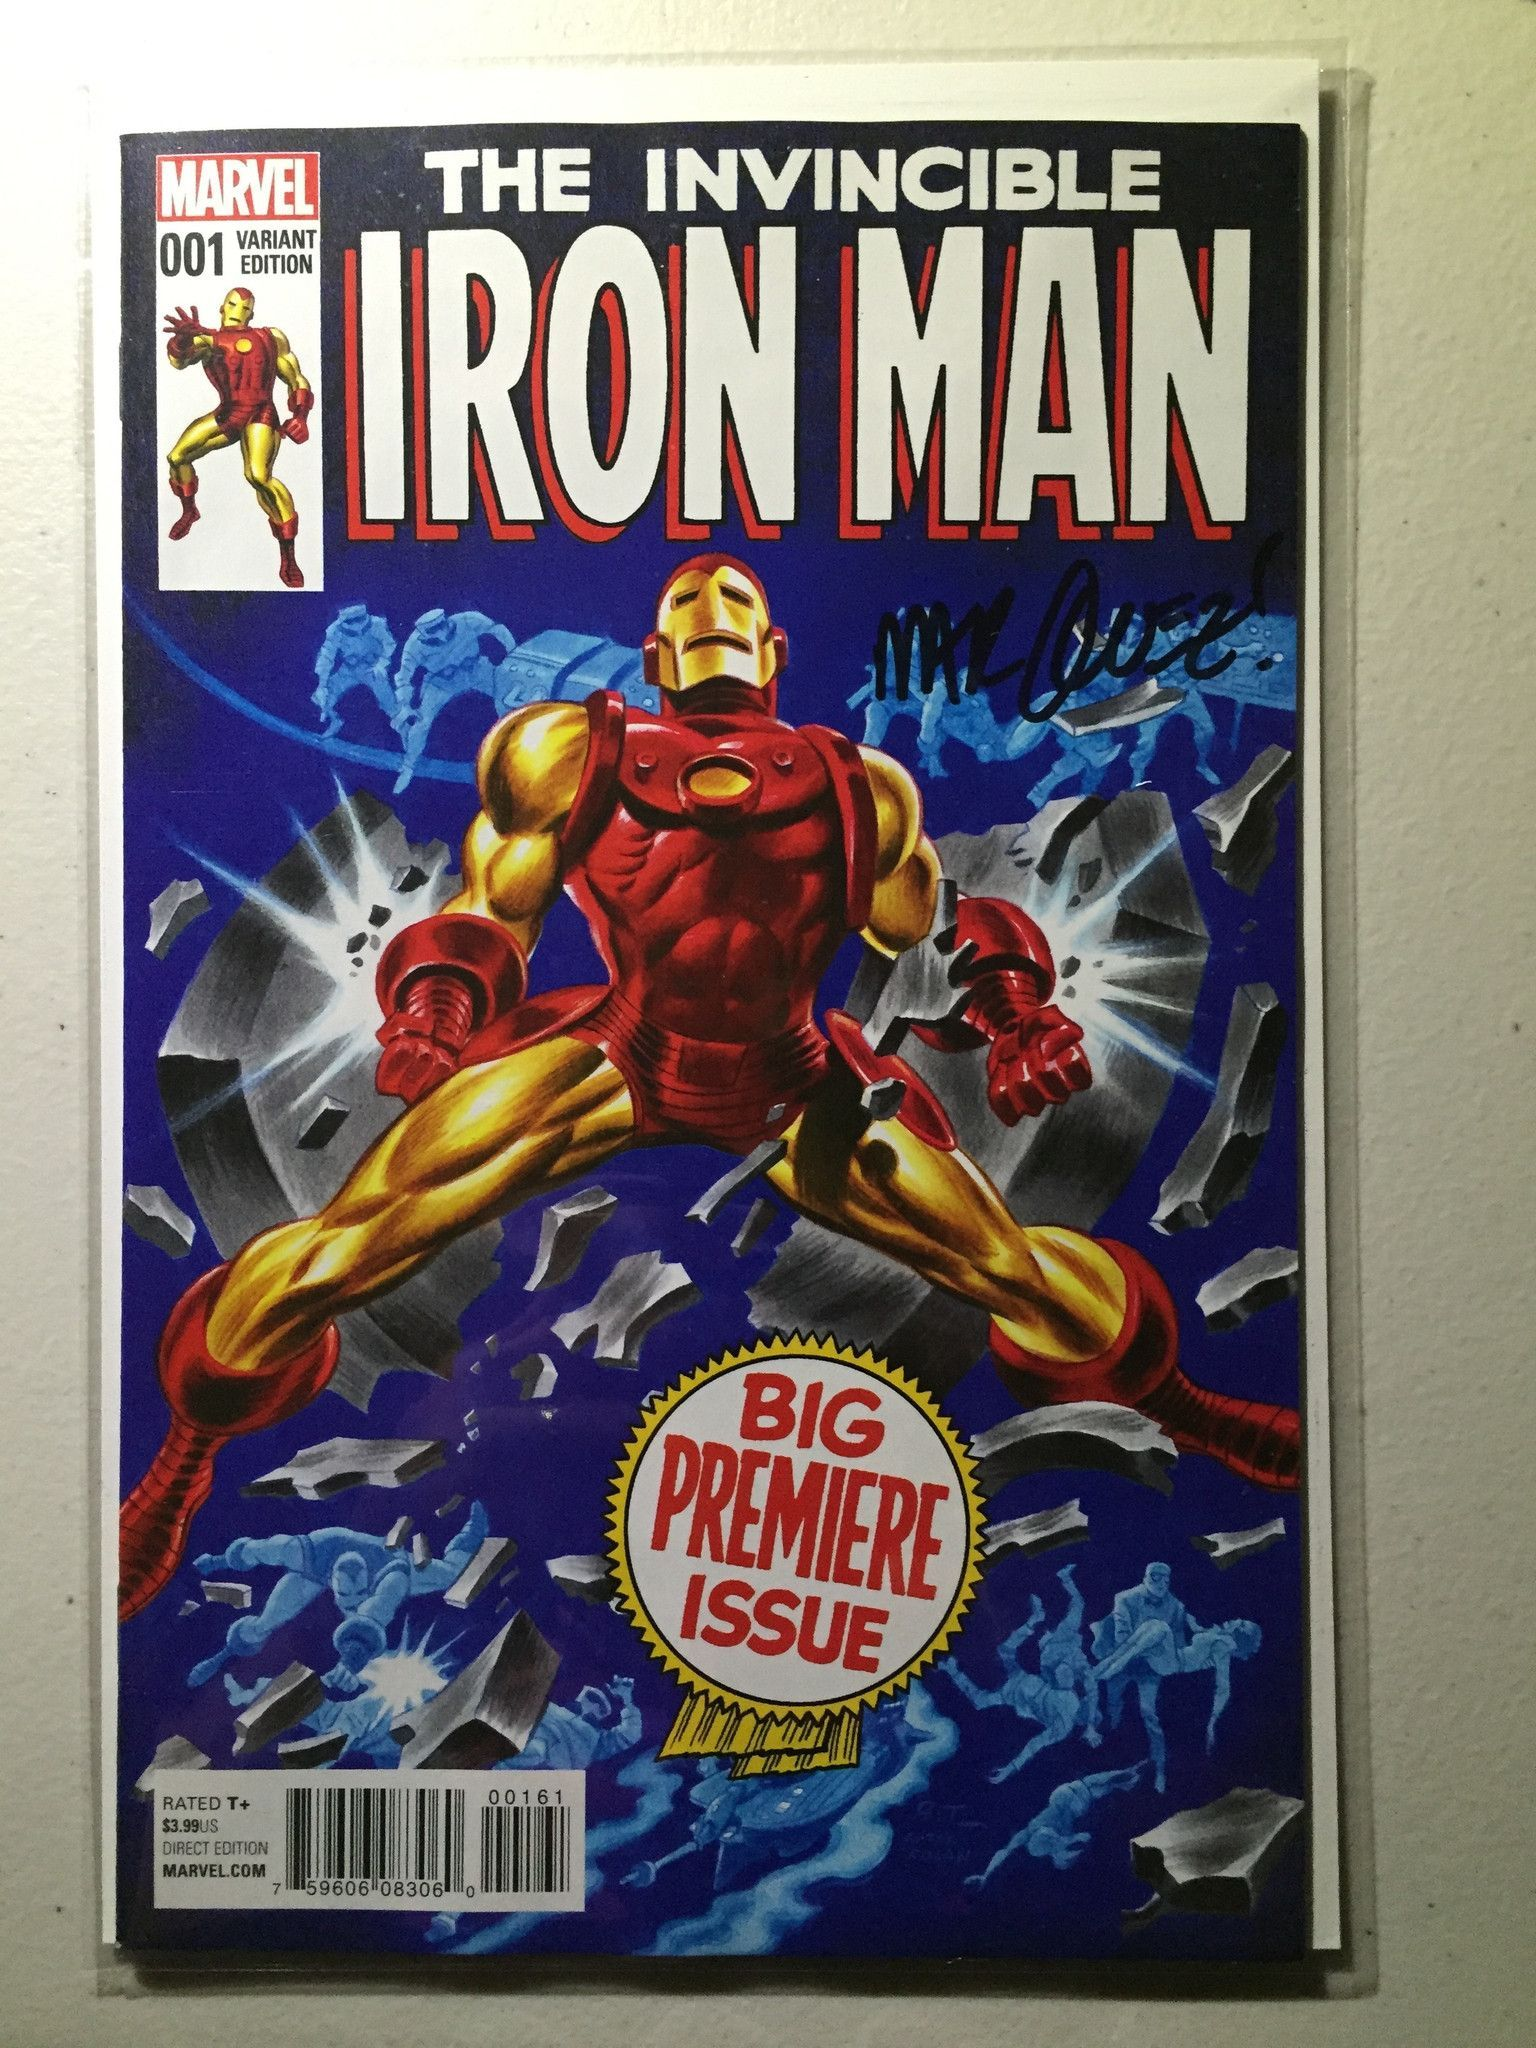 High Grade W Brian Michael Bendis A David Marquez Ca Bruce Timm Exploding Out Of The Pages Of Secret Wars One Marvel Comics Covers Iron Men 1 Iron Man